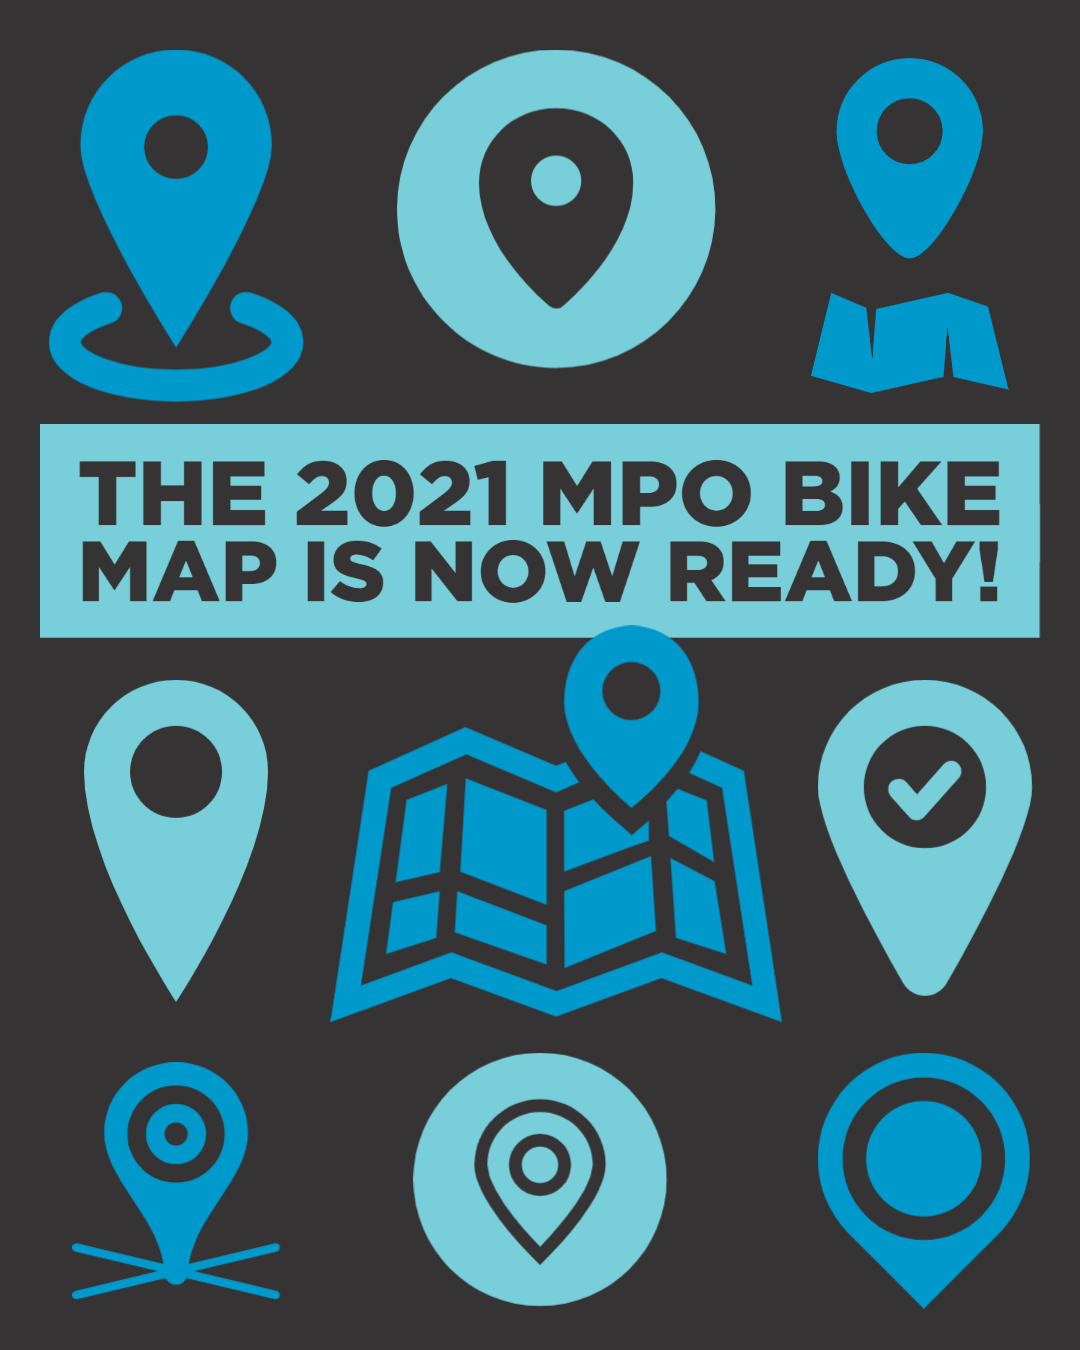 2021 Bike Map is Ready